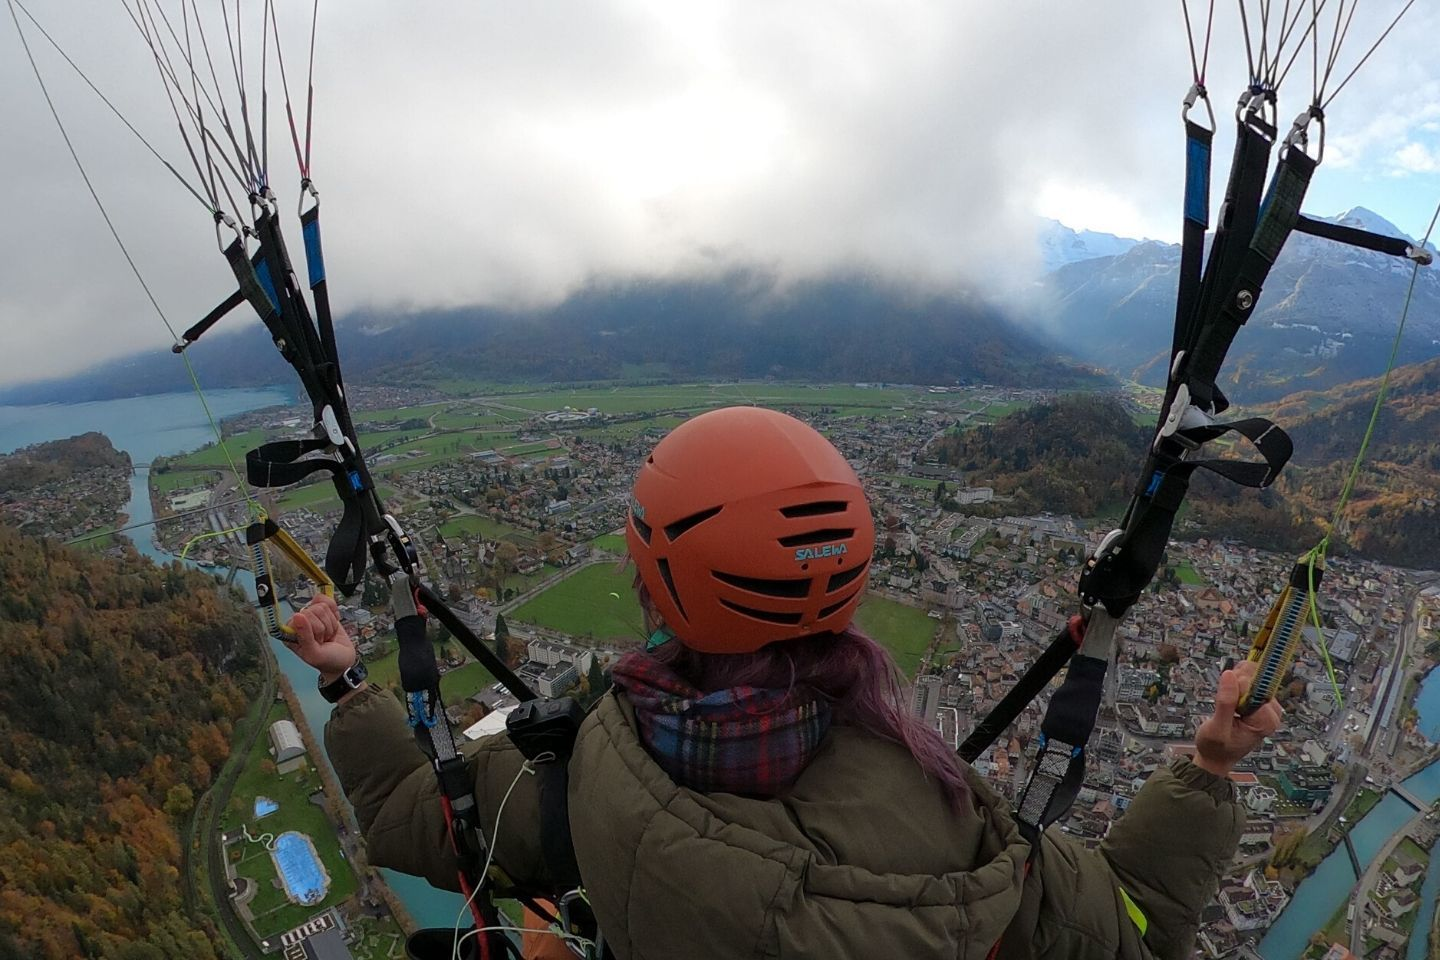 steering the paraglider